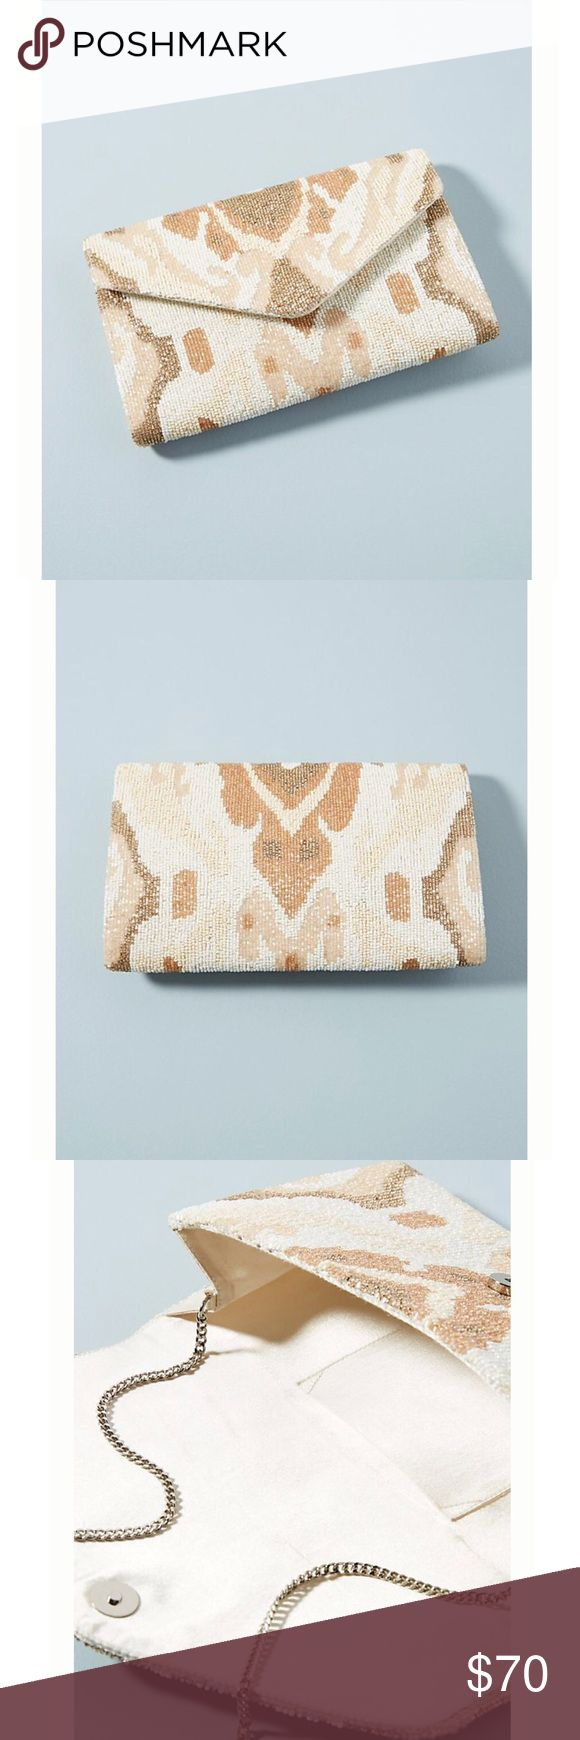 Anthropologie Holiday Beaded Envelop Clutch New with tag, really elegant. The neutral color is easy to style. Anthropologie Bags Clutches & Wristlets